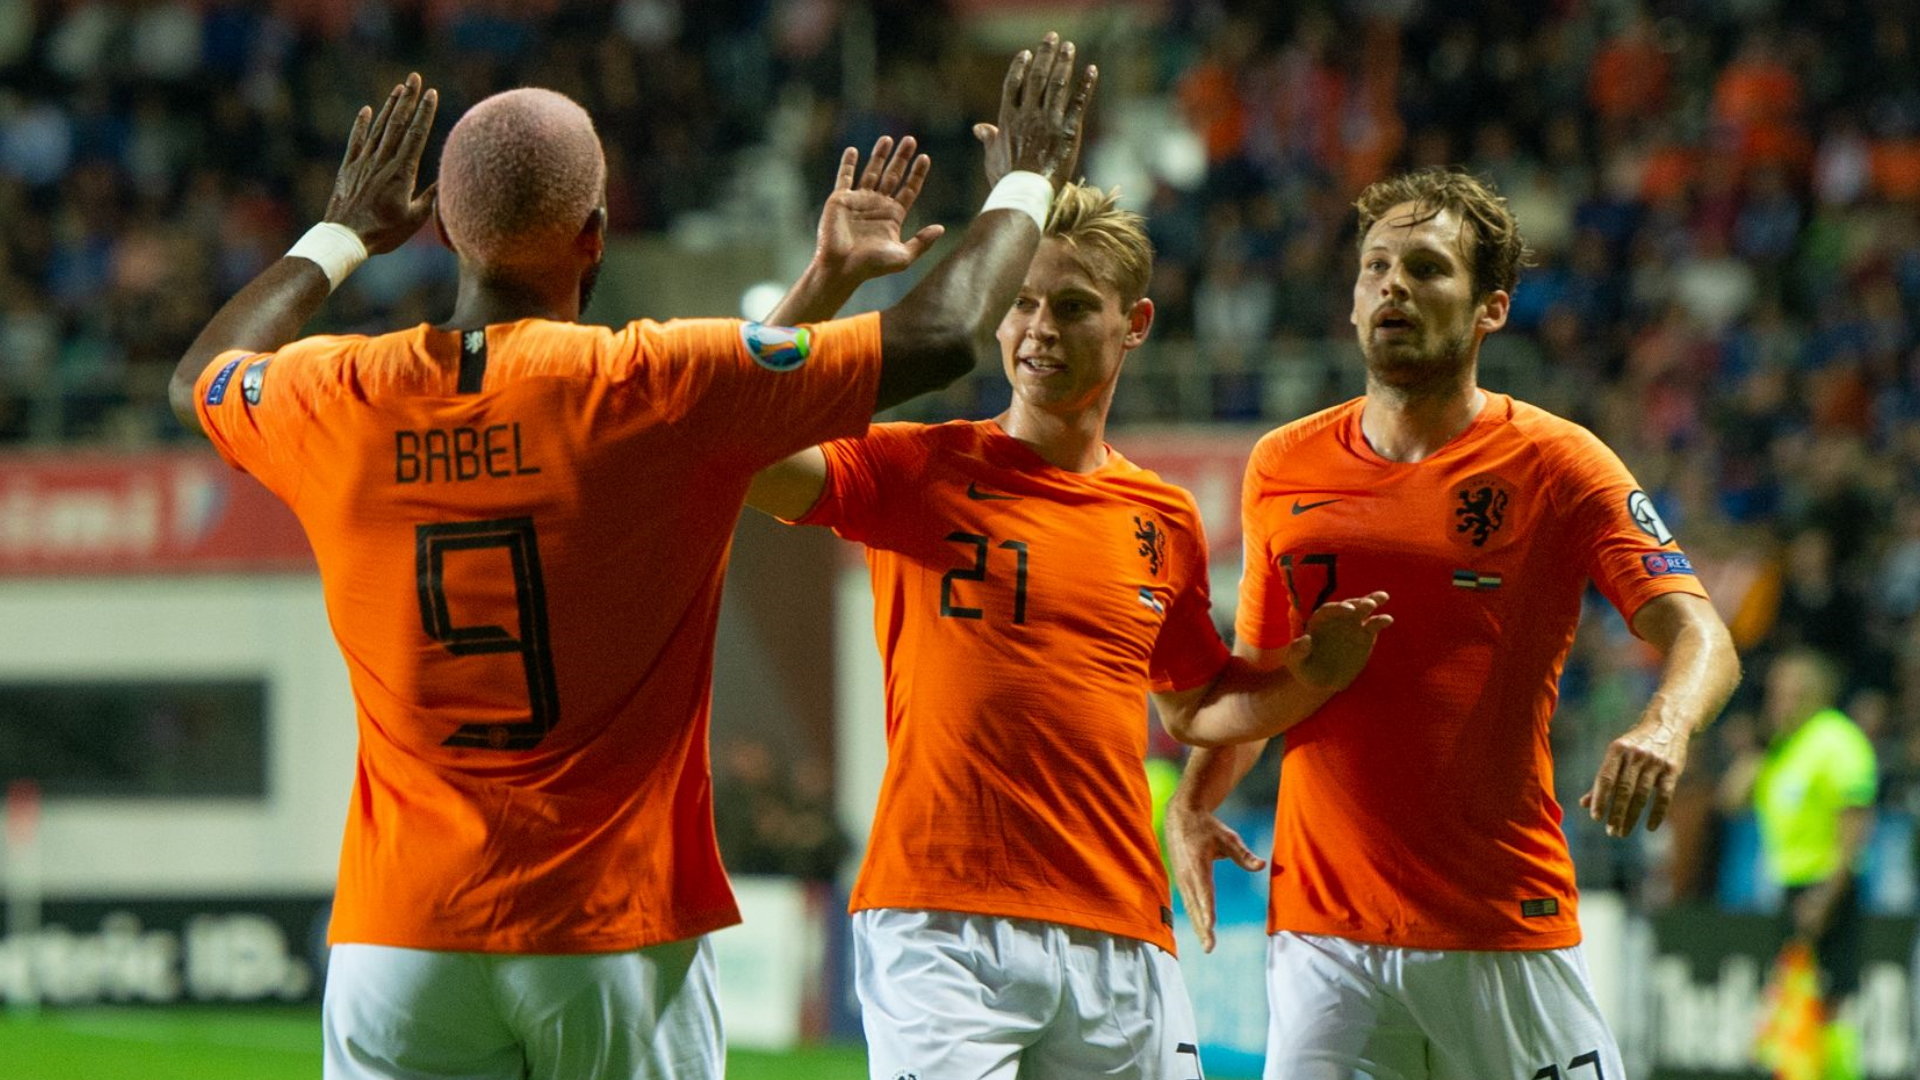 Ryan Babel, Frenkie de Jong, Daley Blind, Netherlands